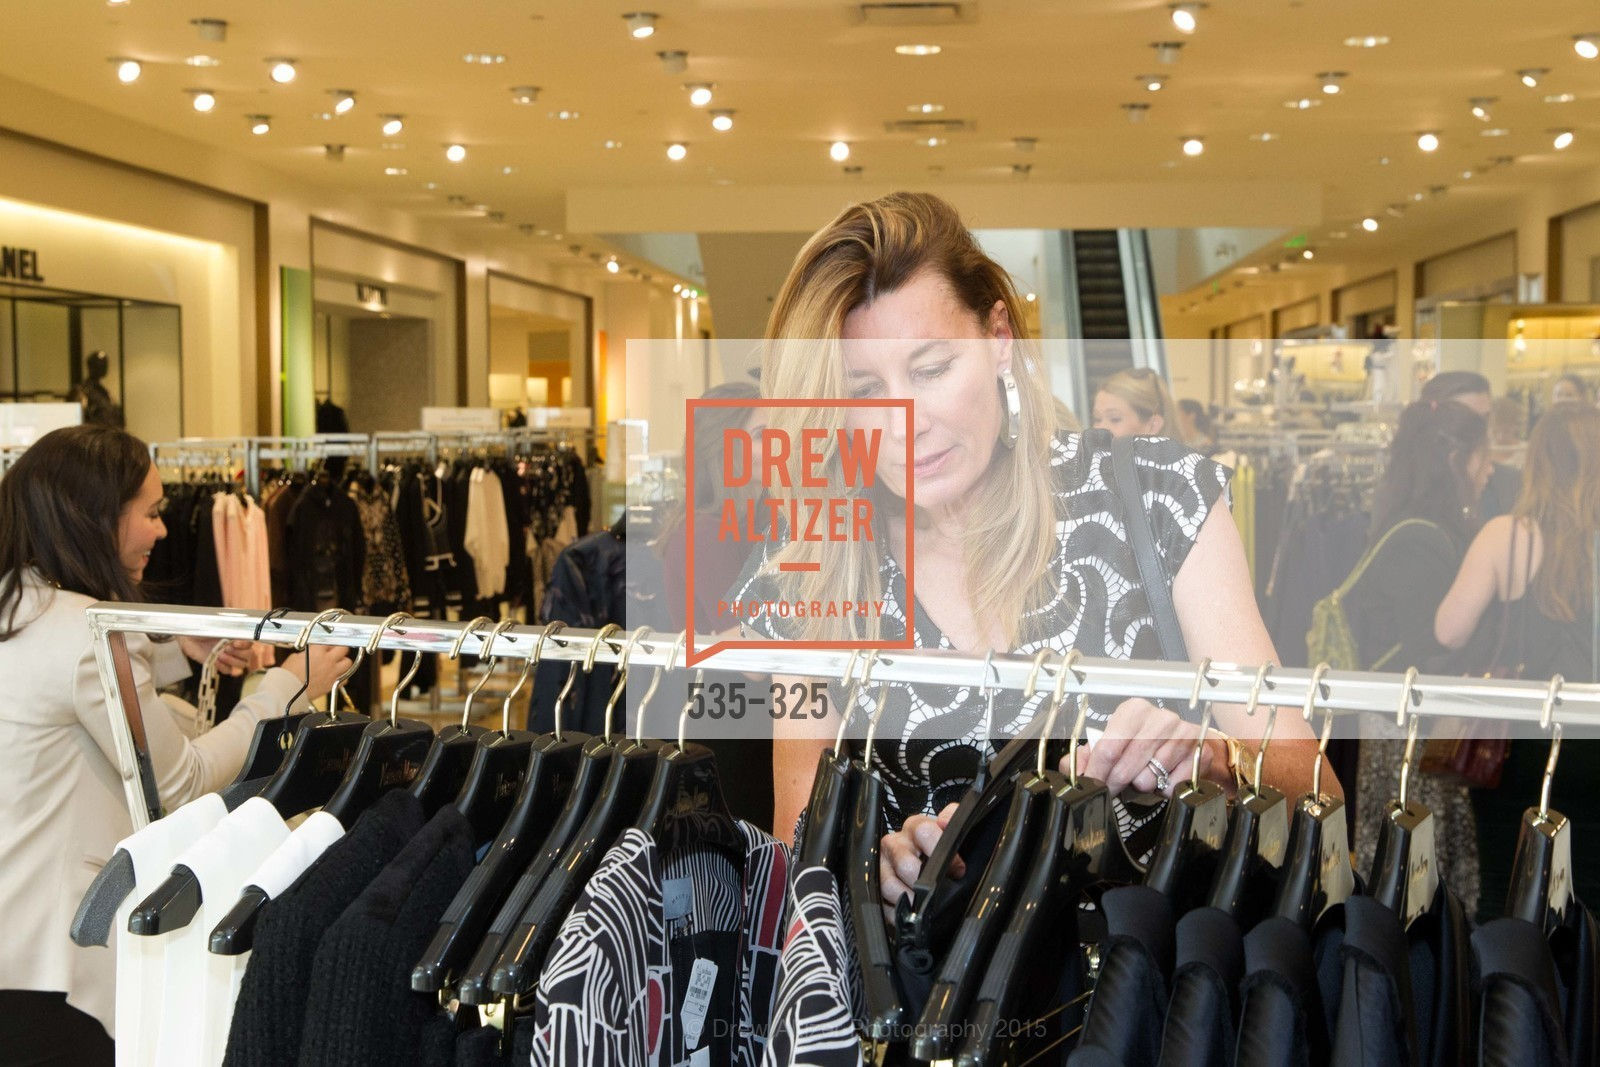 Susan Dunlevy, Maiyet Reception at Neiman Marcus, Neiman Marcus, September 29th, 2015,Drew Altizer, Drew Altizer Photography, full-service agency, private events, San Francisco photographer, photographer california